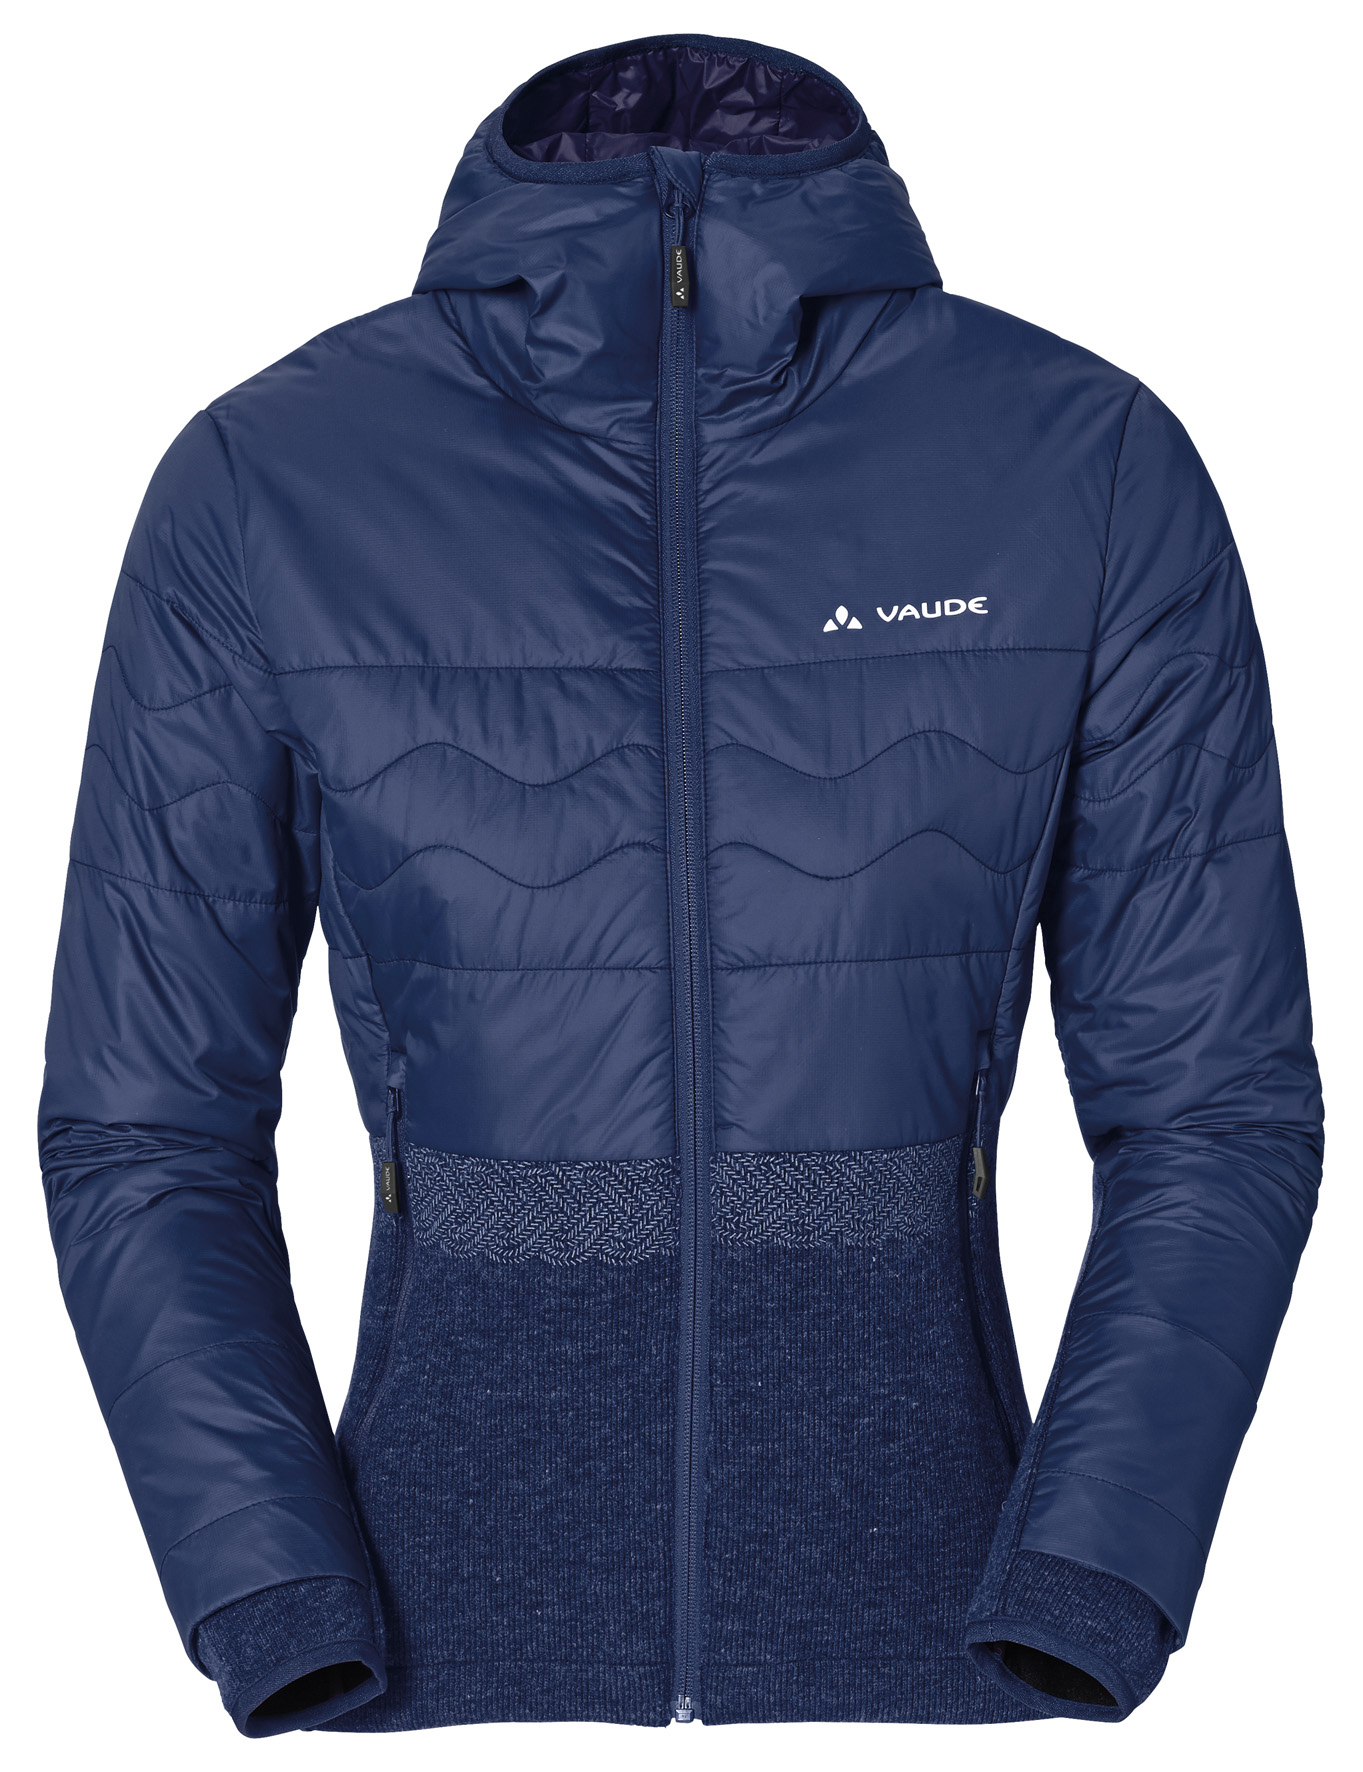 VAUDE Women´s Tirano Padded Jacket sailor blue Größe 34 - schneider-sports